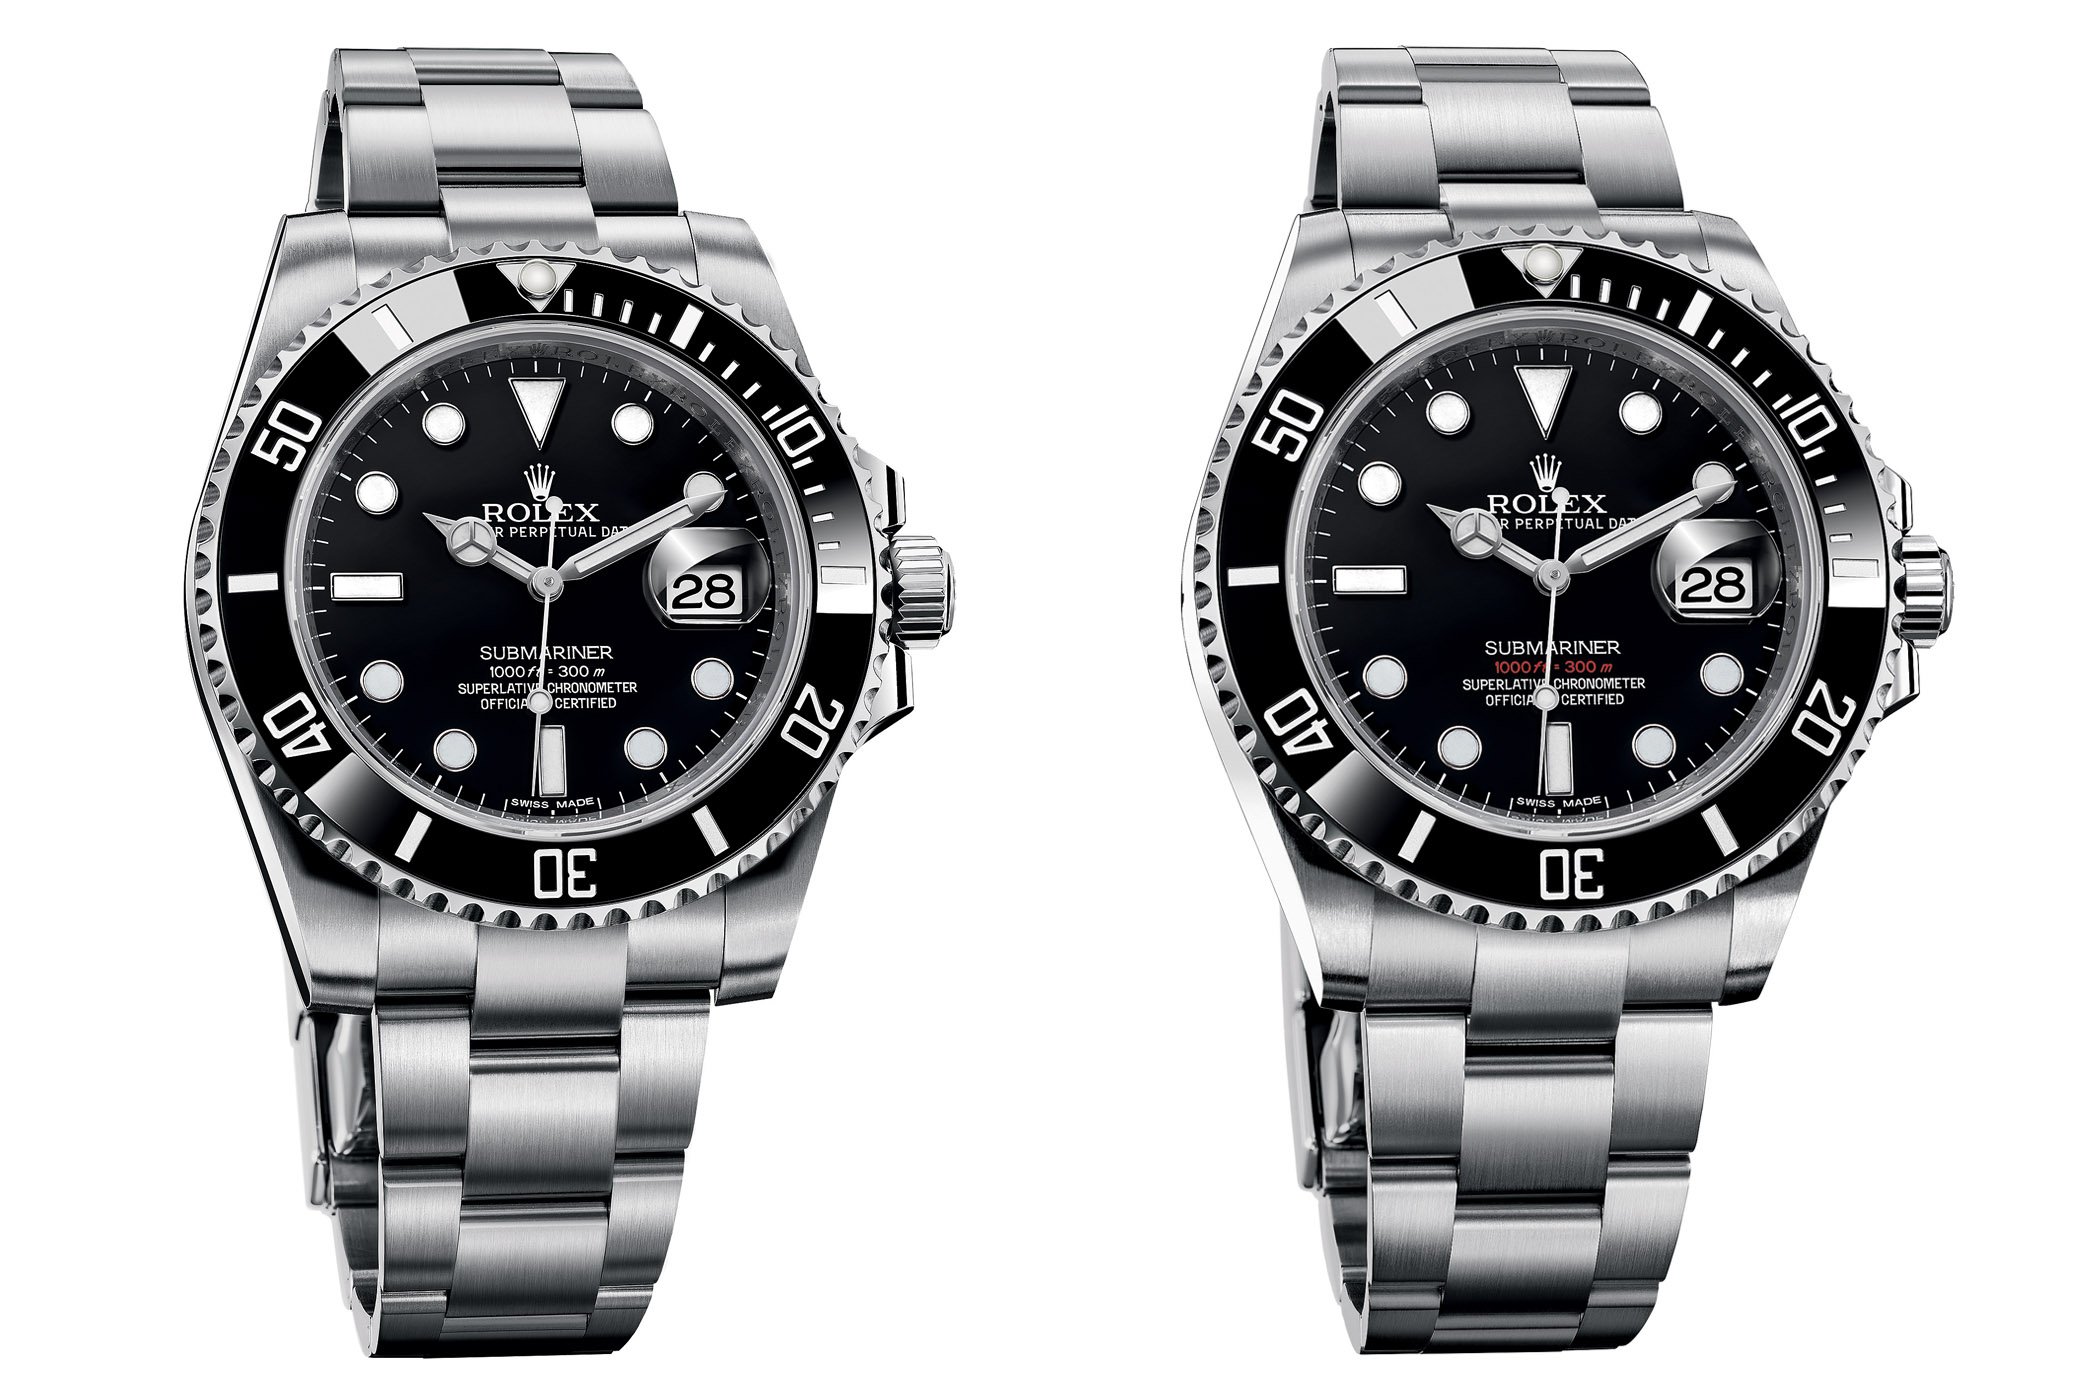 Rolex Submariner 126610LN vs Rolex Submariner 116610LN - Rolex Baselworld 2018 - Rolex Predictions 2018